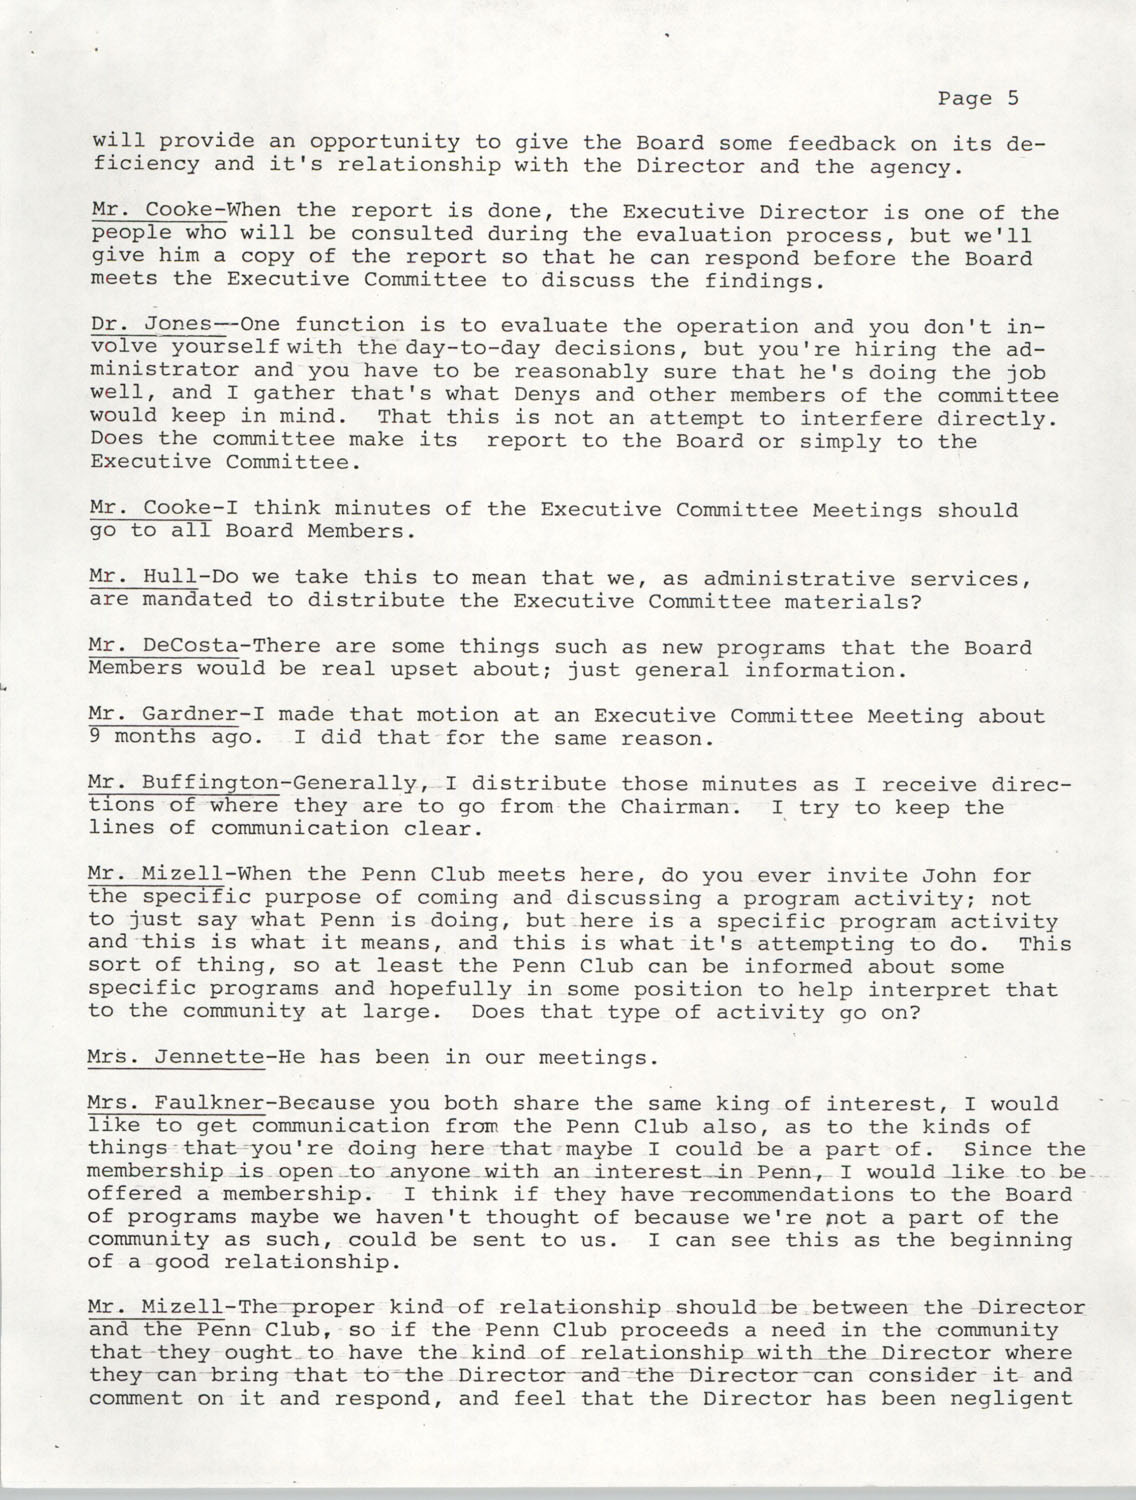 Minutes, Annual Board Meeting, Penn Community Services, October 22, 1977, Page 5